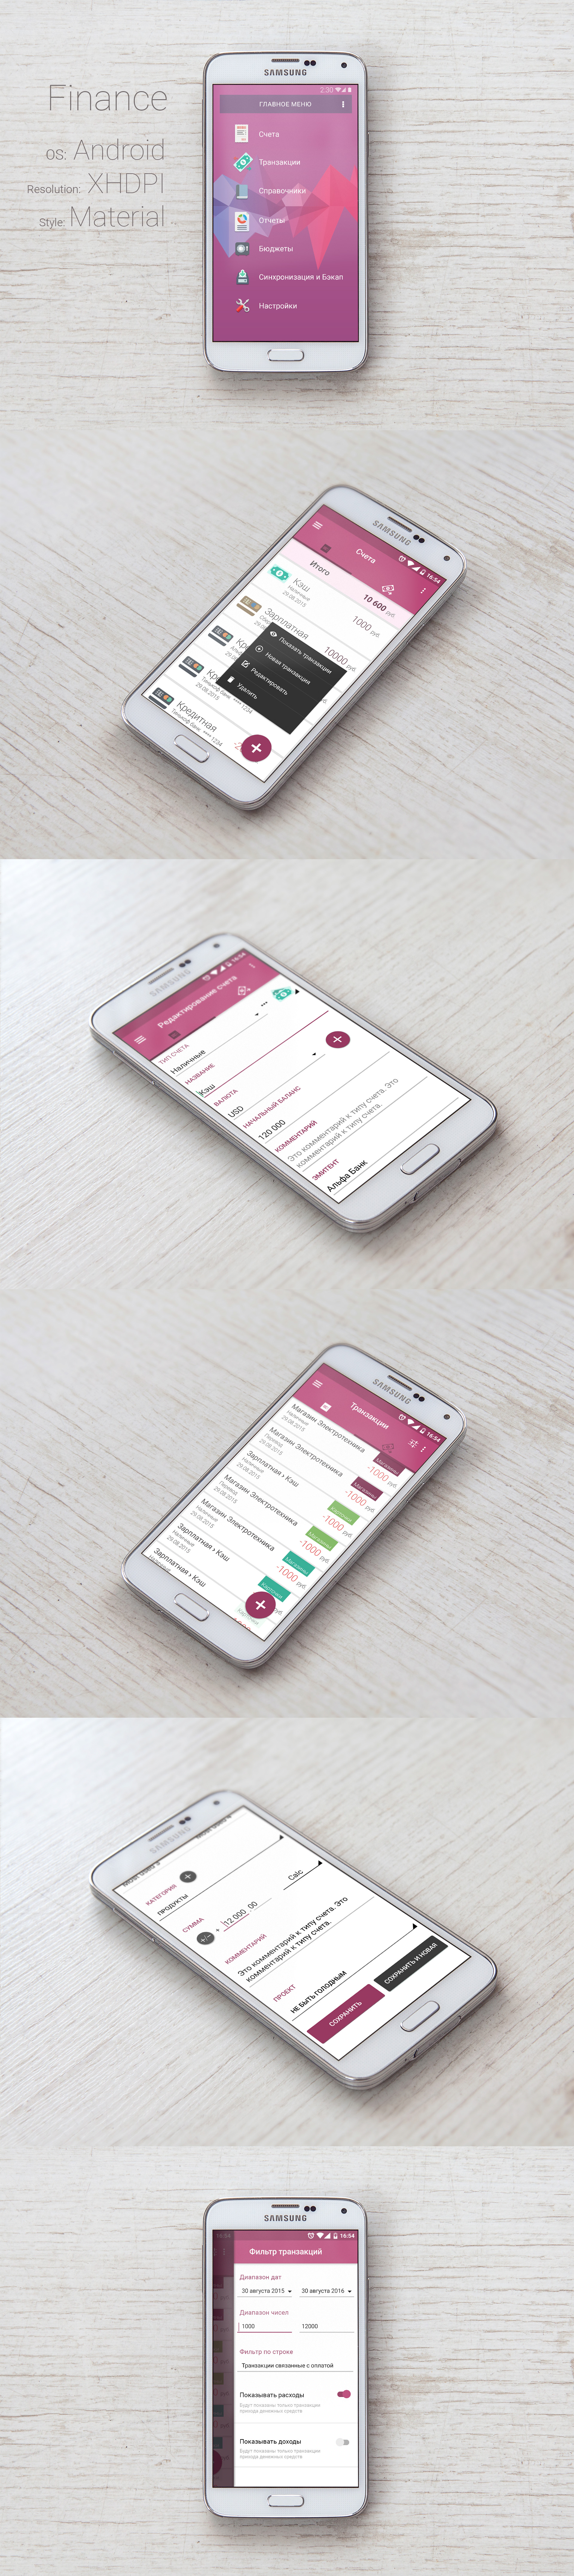 Finance App Android